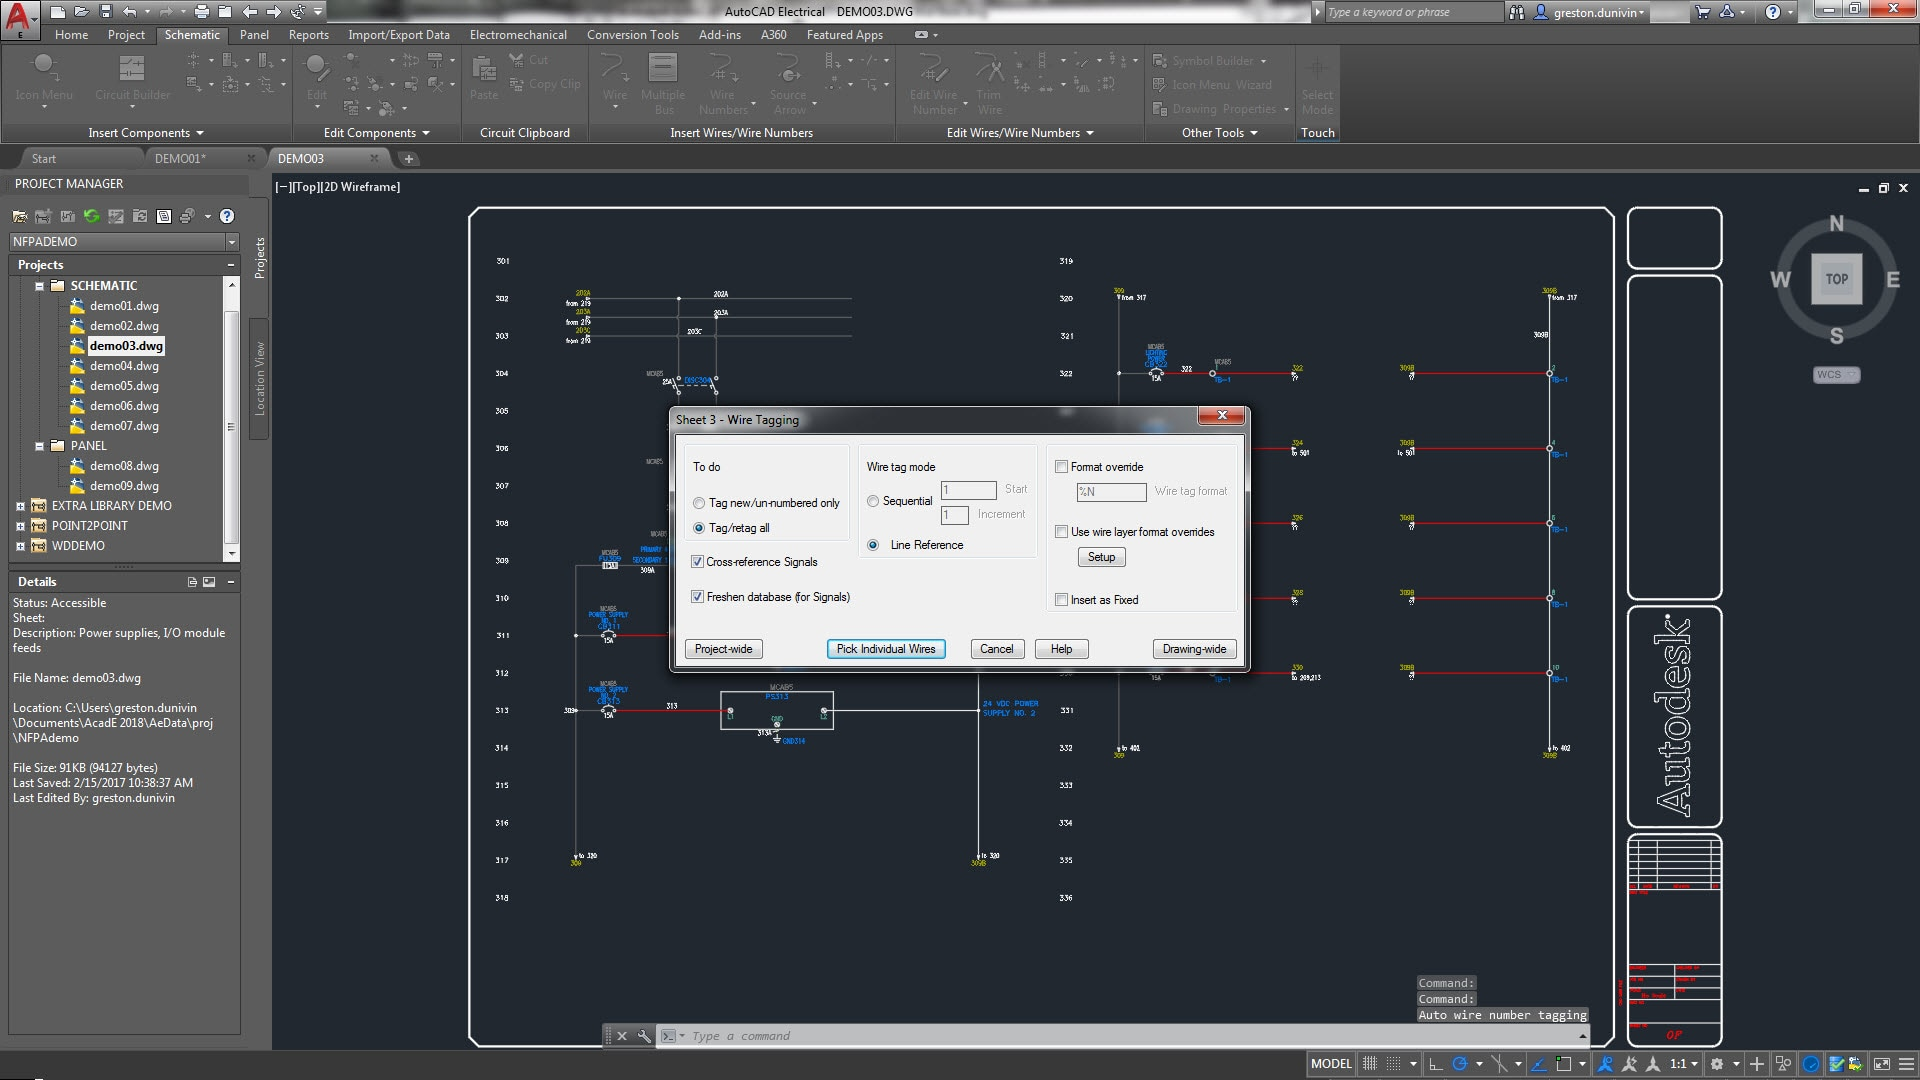 Autocad Electrical Toolset Design Software Wiring Diagram Symbol Legend Get Free Image About Schematic